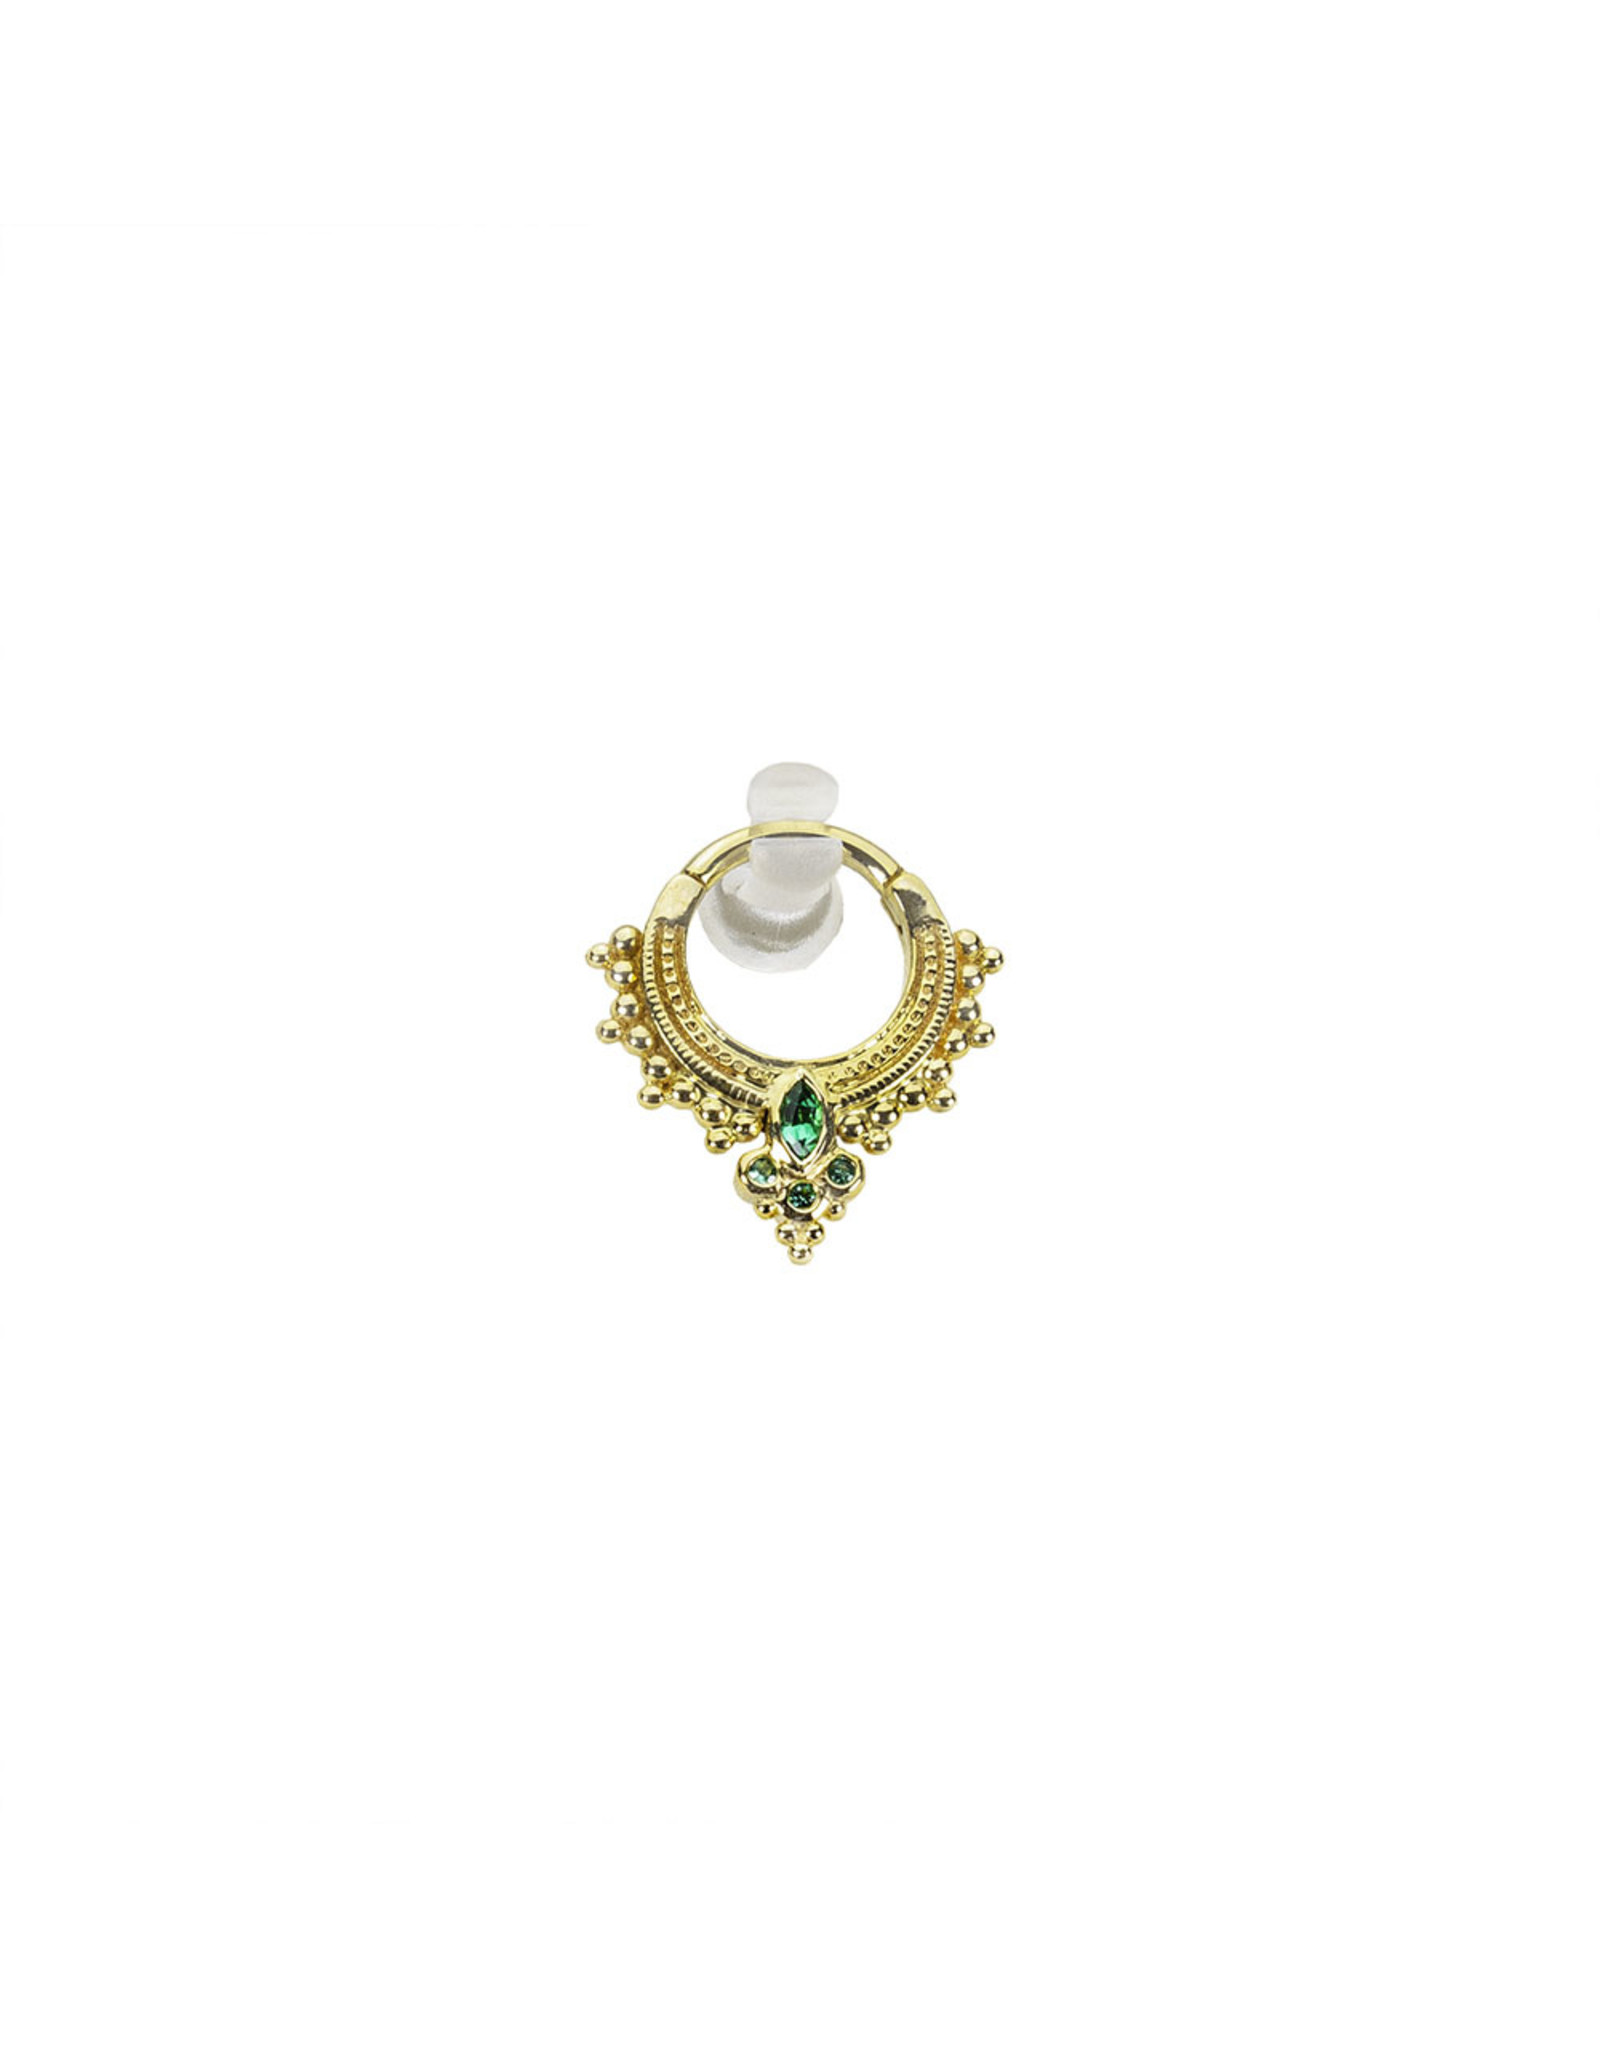 """BVLA BVLA 16g 5/16  """"Andromeda"""" clicker with 3x1.5 marquise AA Emerald center and three 1.0 bezel set AA emeralds"""